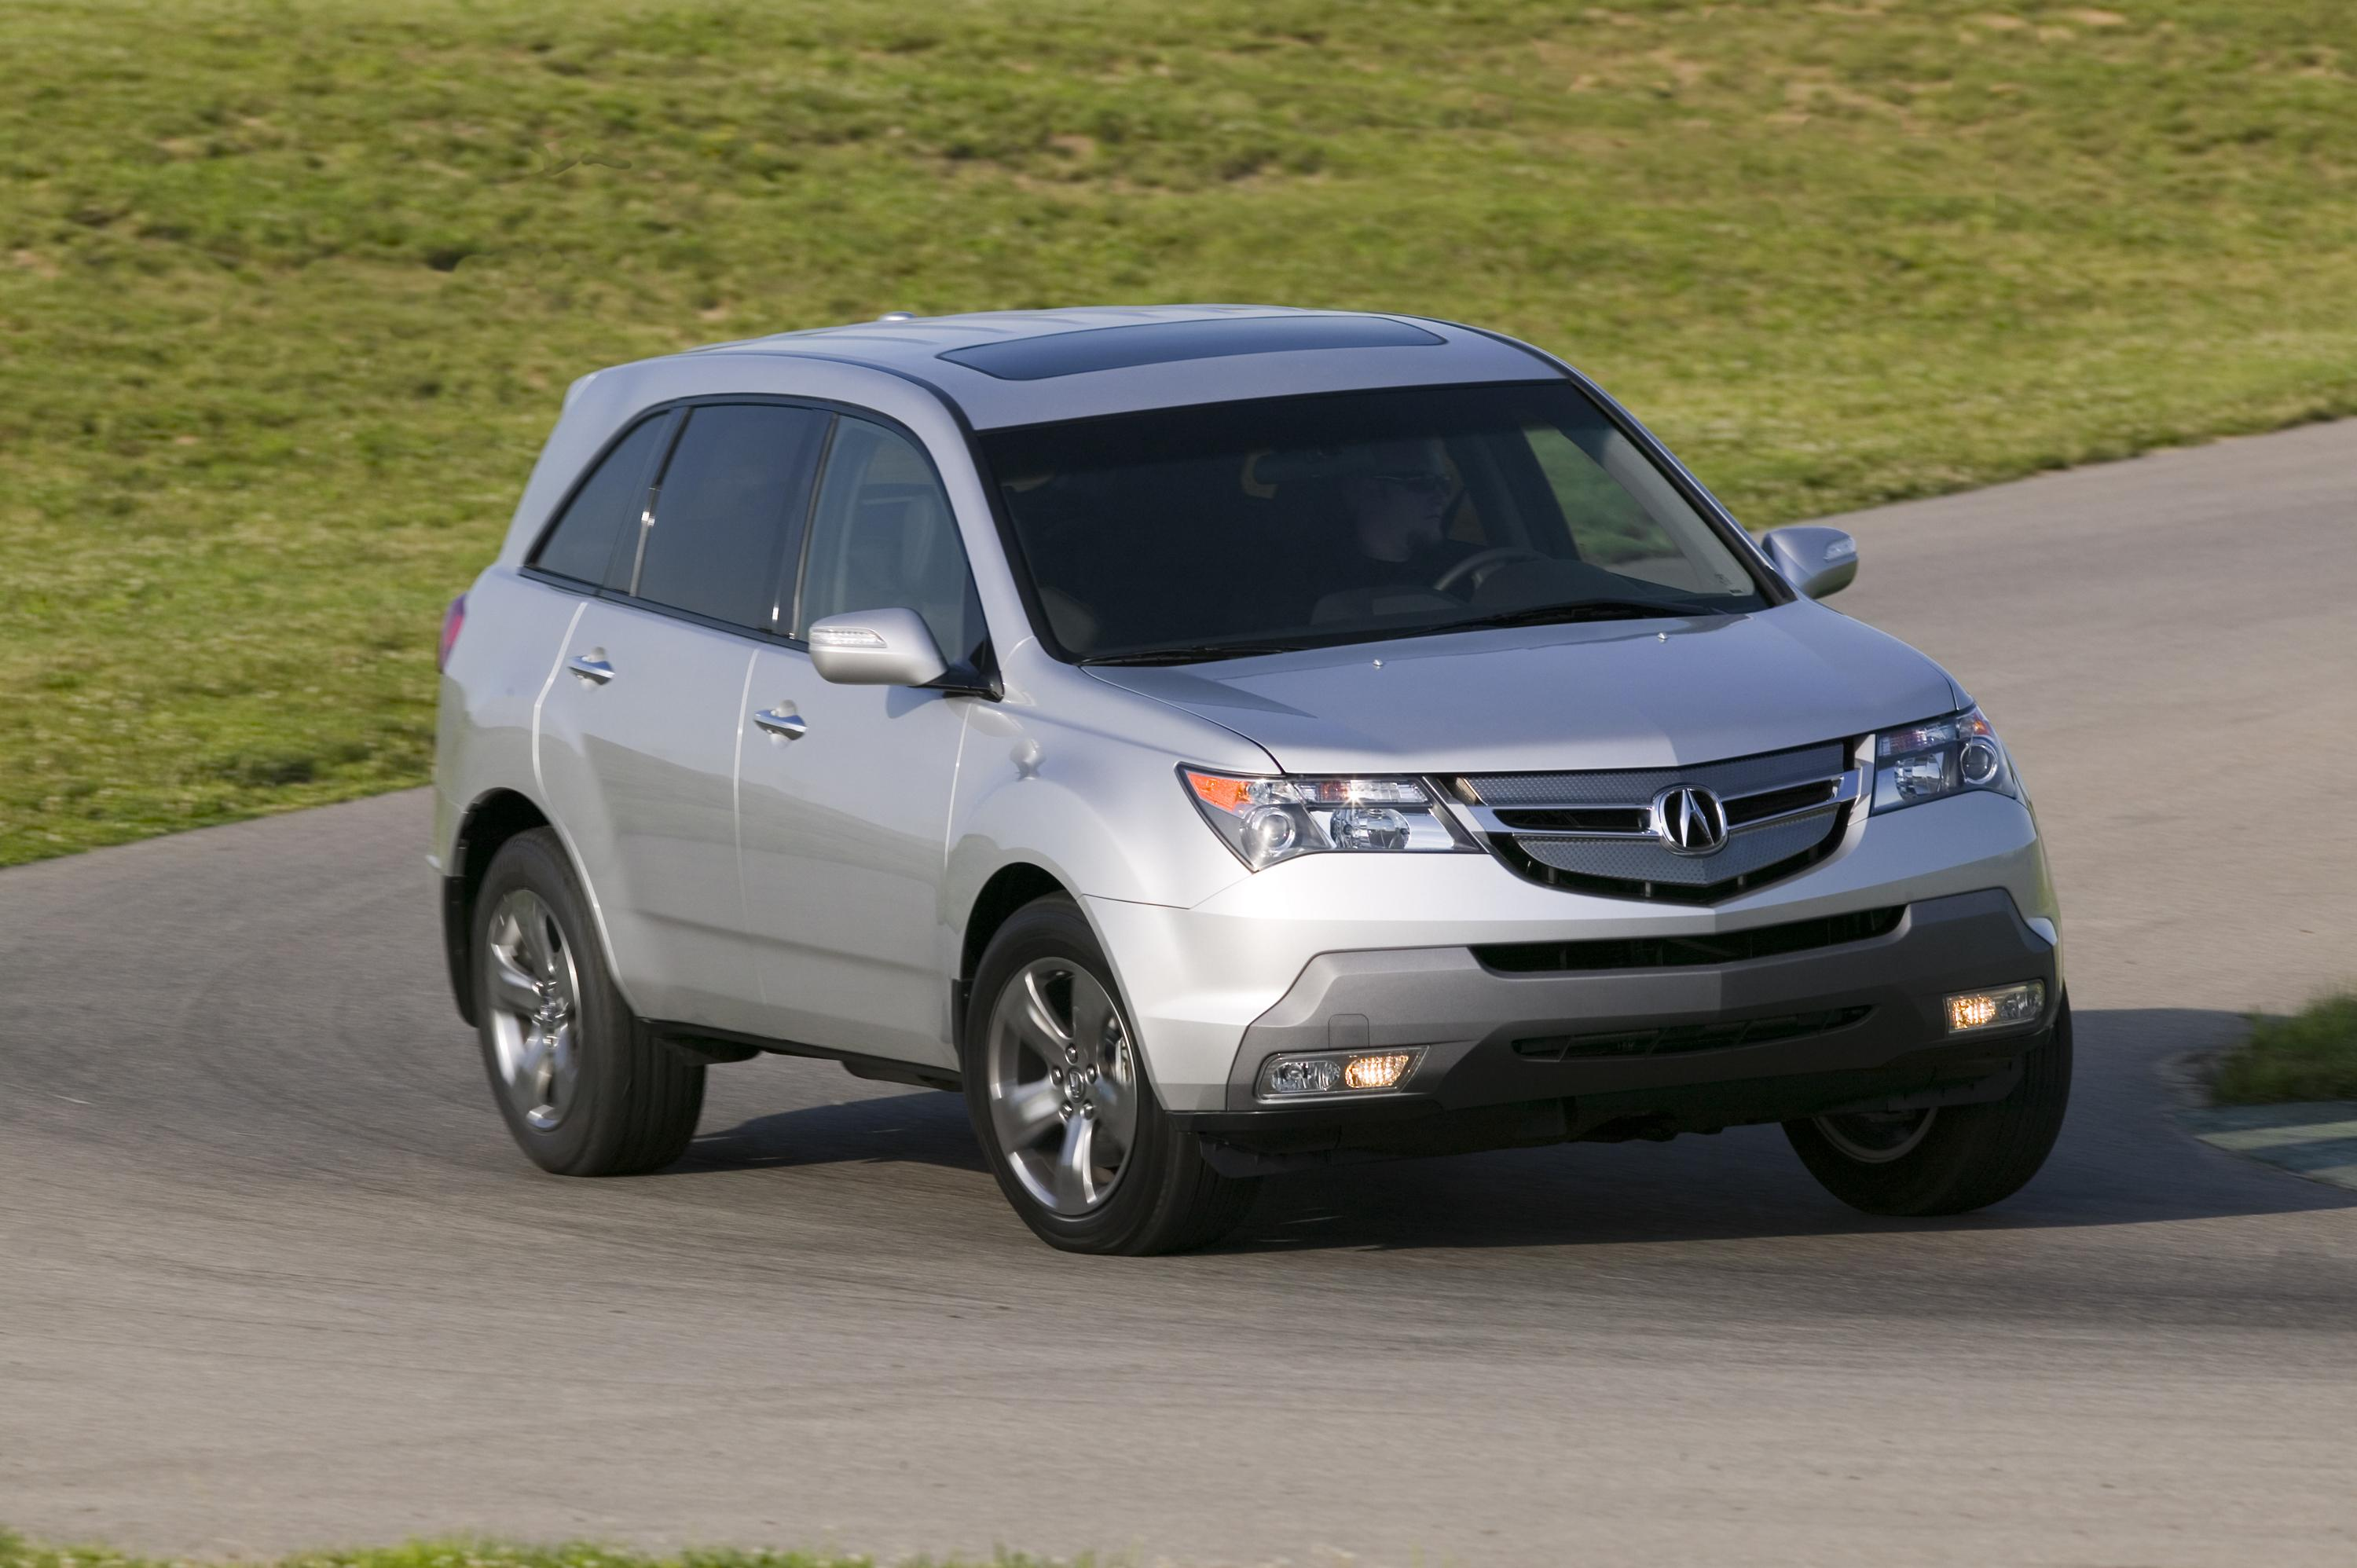 2007 acura mdx gallery 102998 top speed. Black Bedroom Furniture Sets. Home Design Ideas